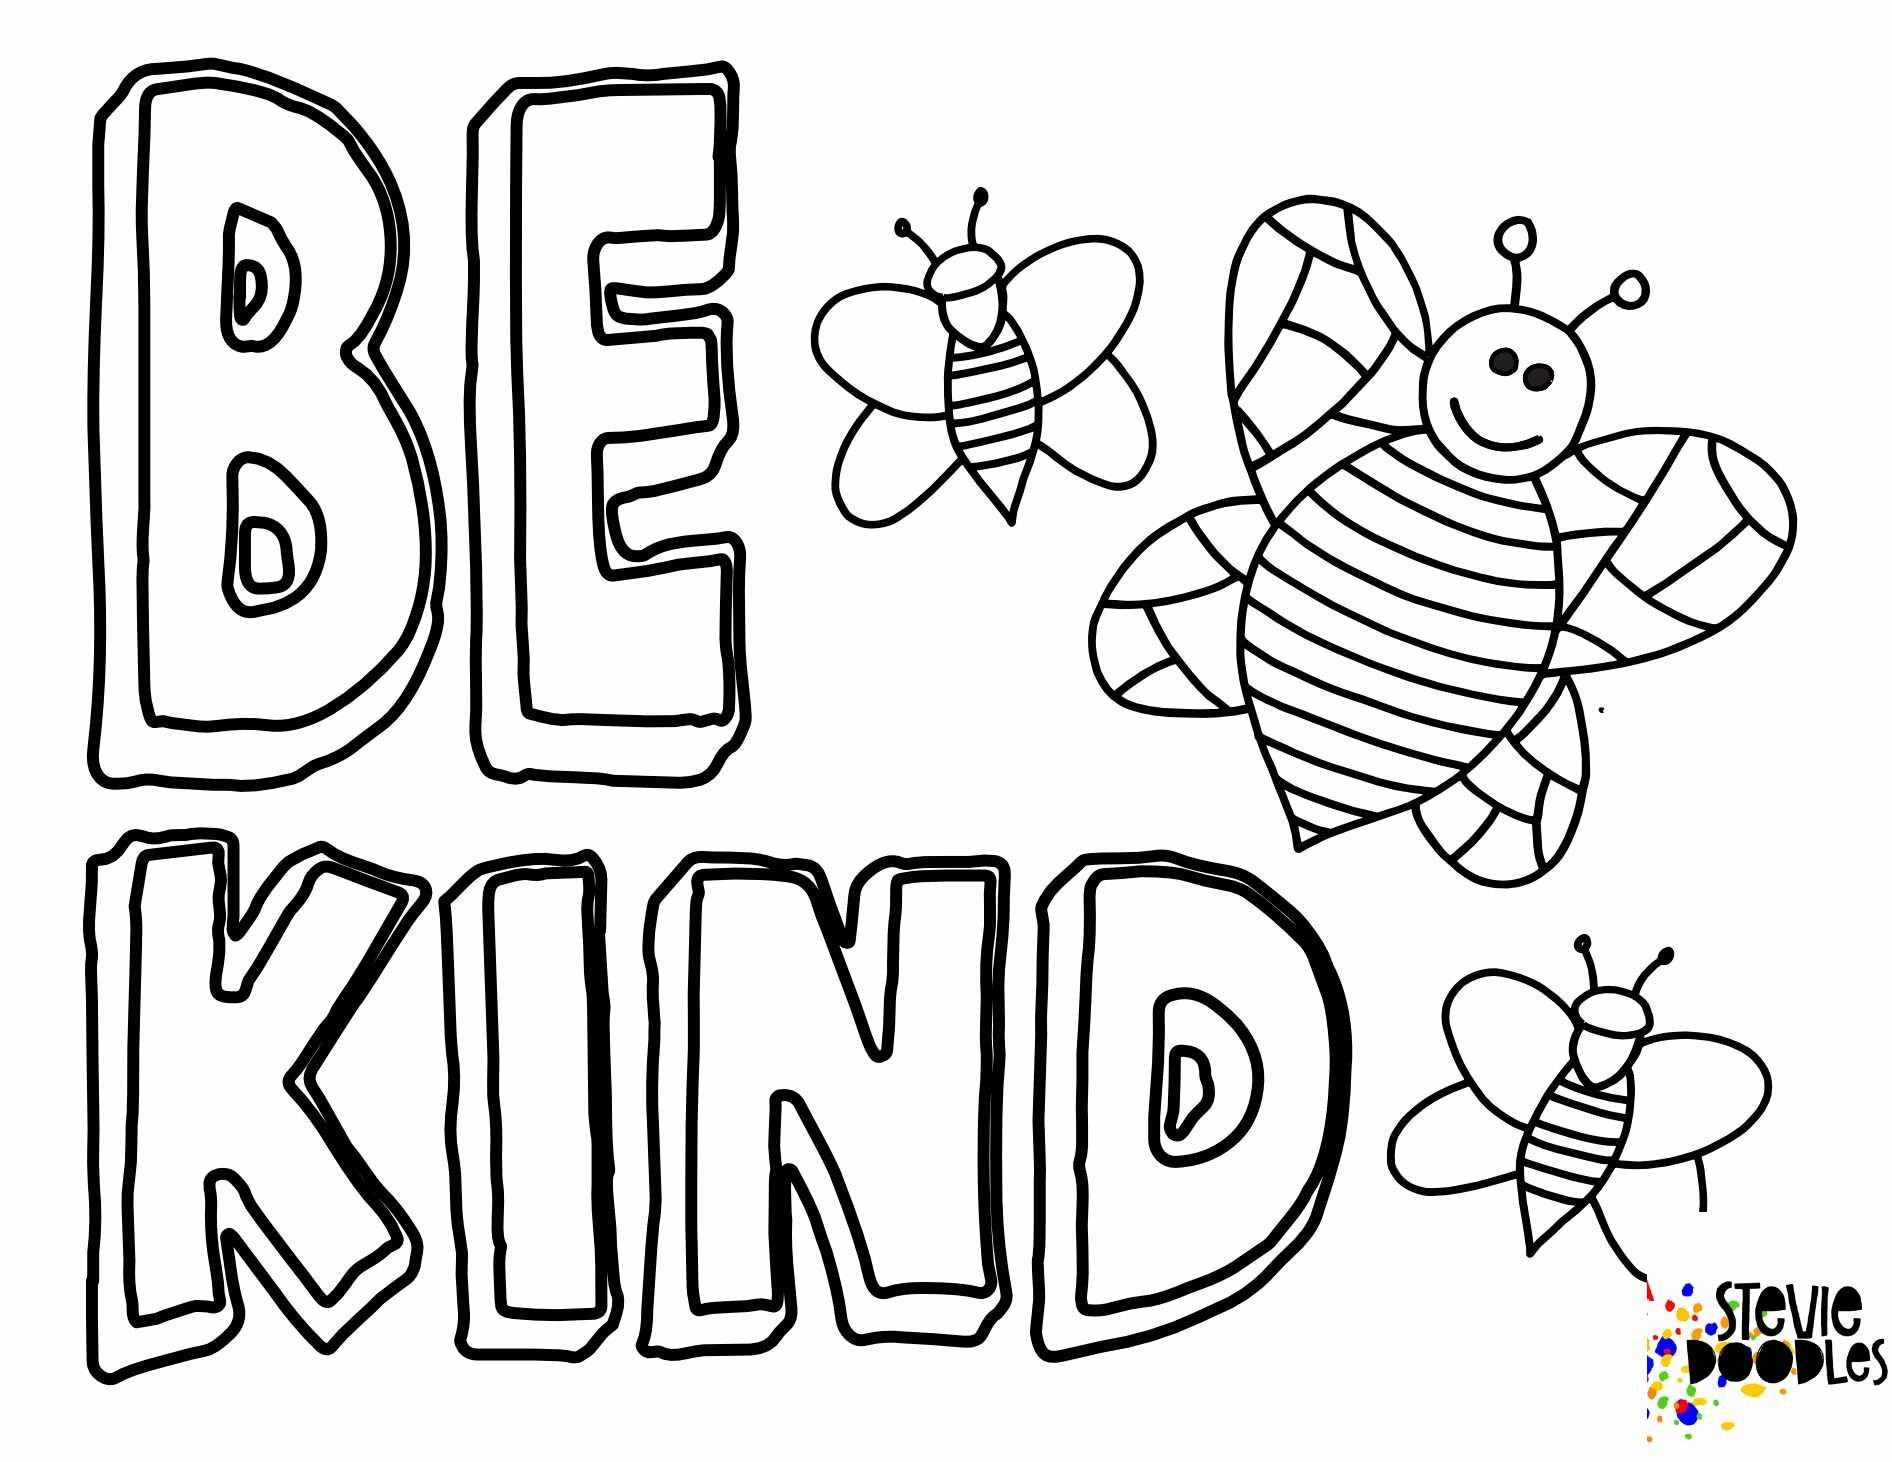 6 Free Be Kind Printable Coloring Pages Stevie Doodles Bee Coloring Pages Free Printable Coloring Pages Quote Coloring Pages